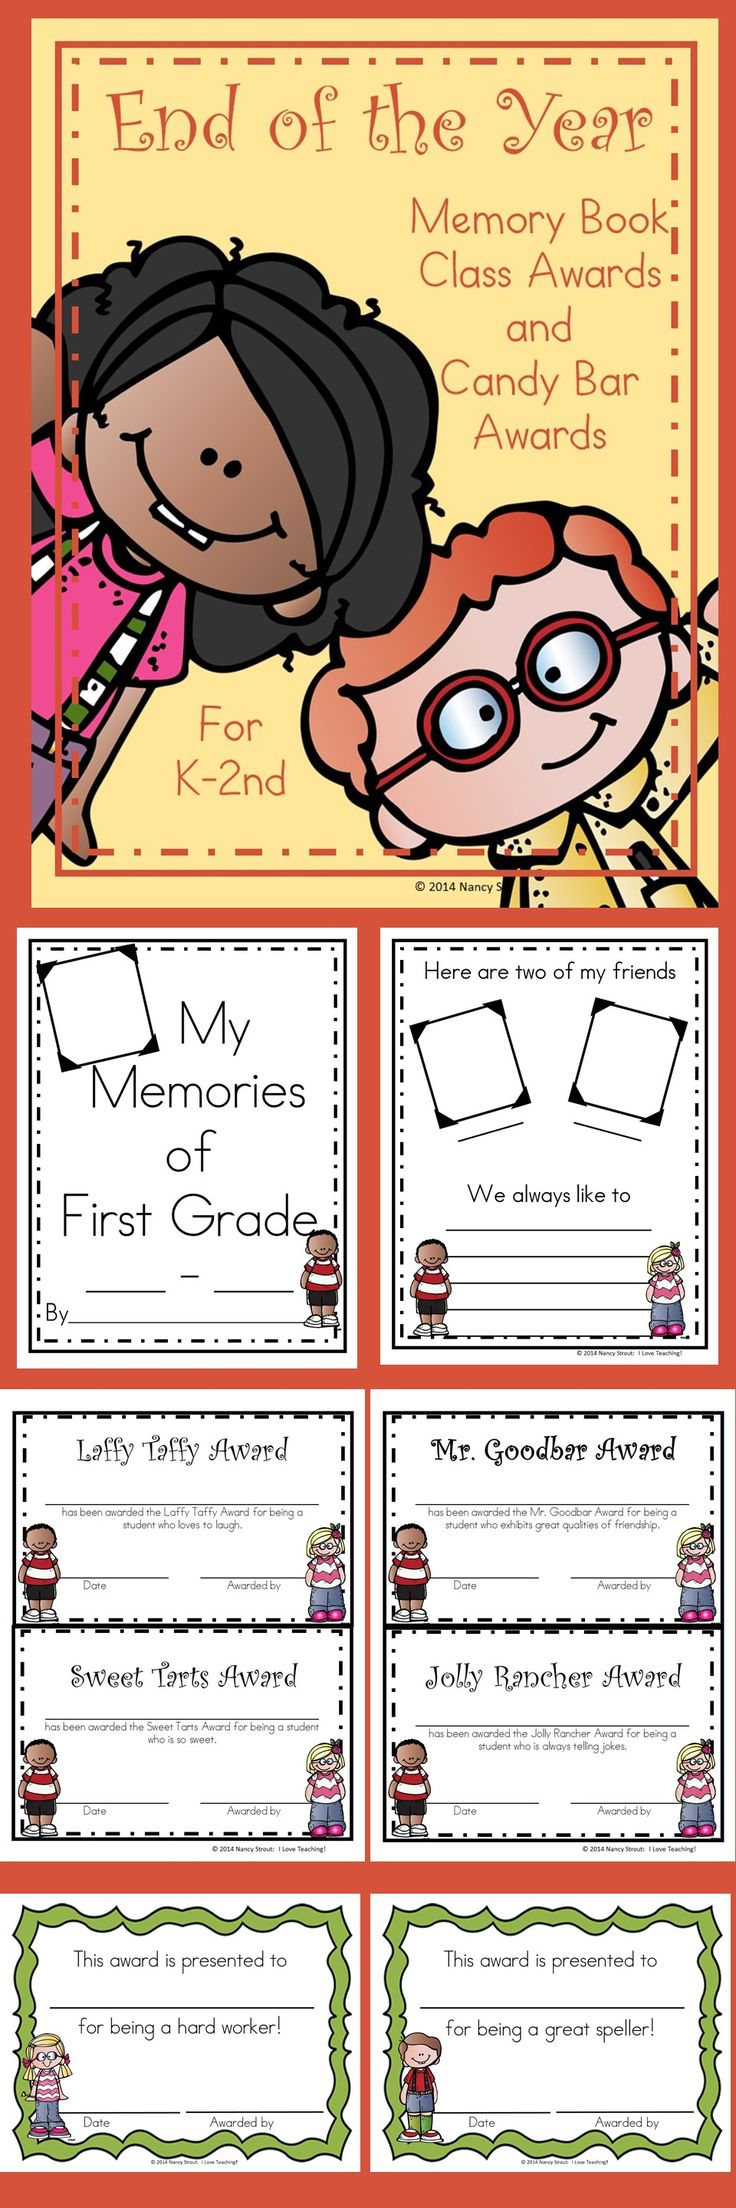 End of the year: End of the year memory books are a fun way to wrap up the year! I have also included candy bar awards and classroom awards.